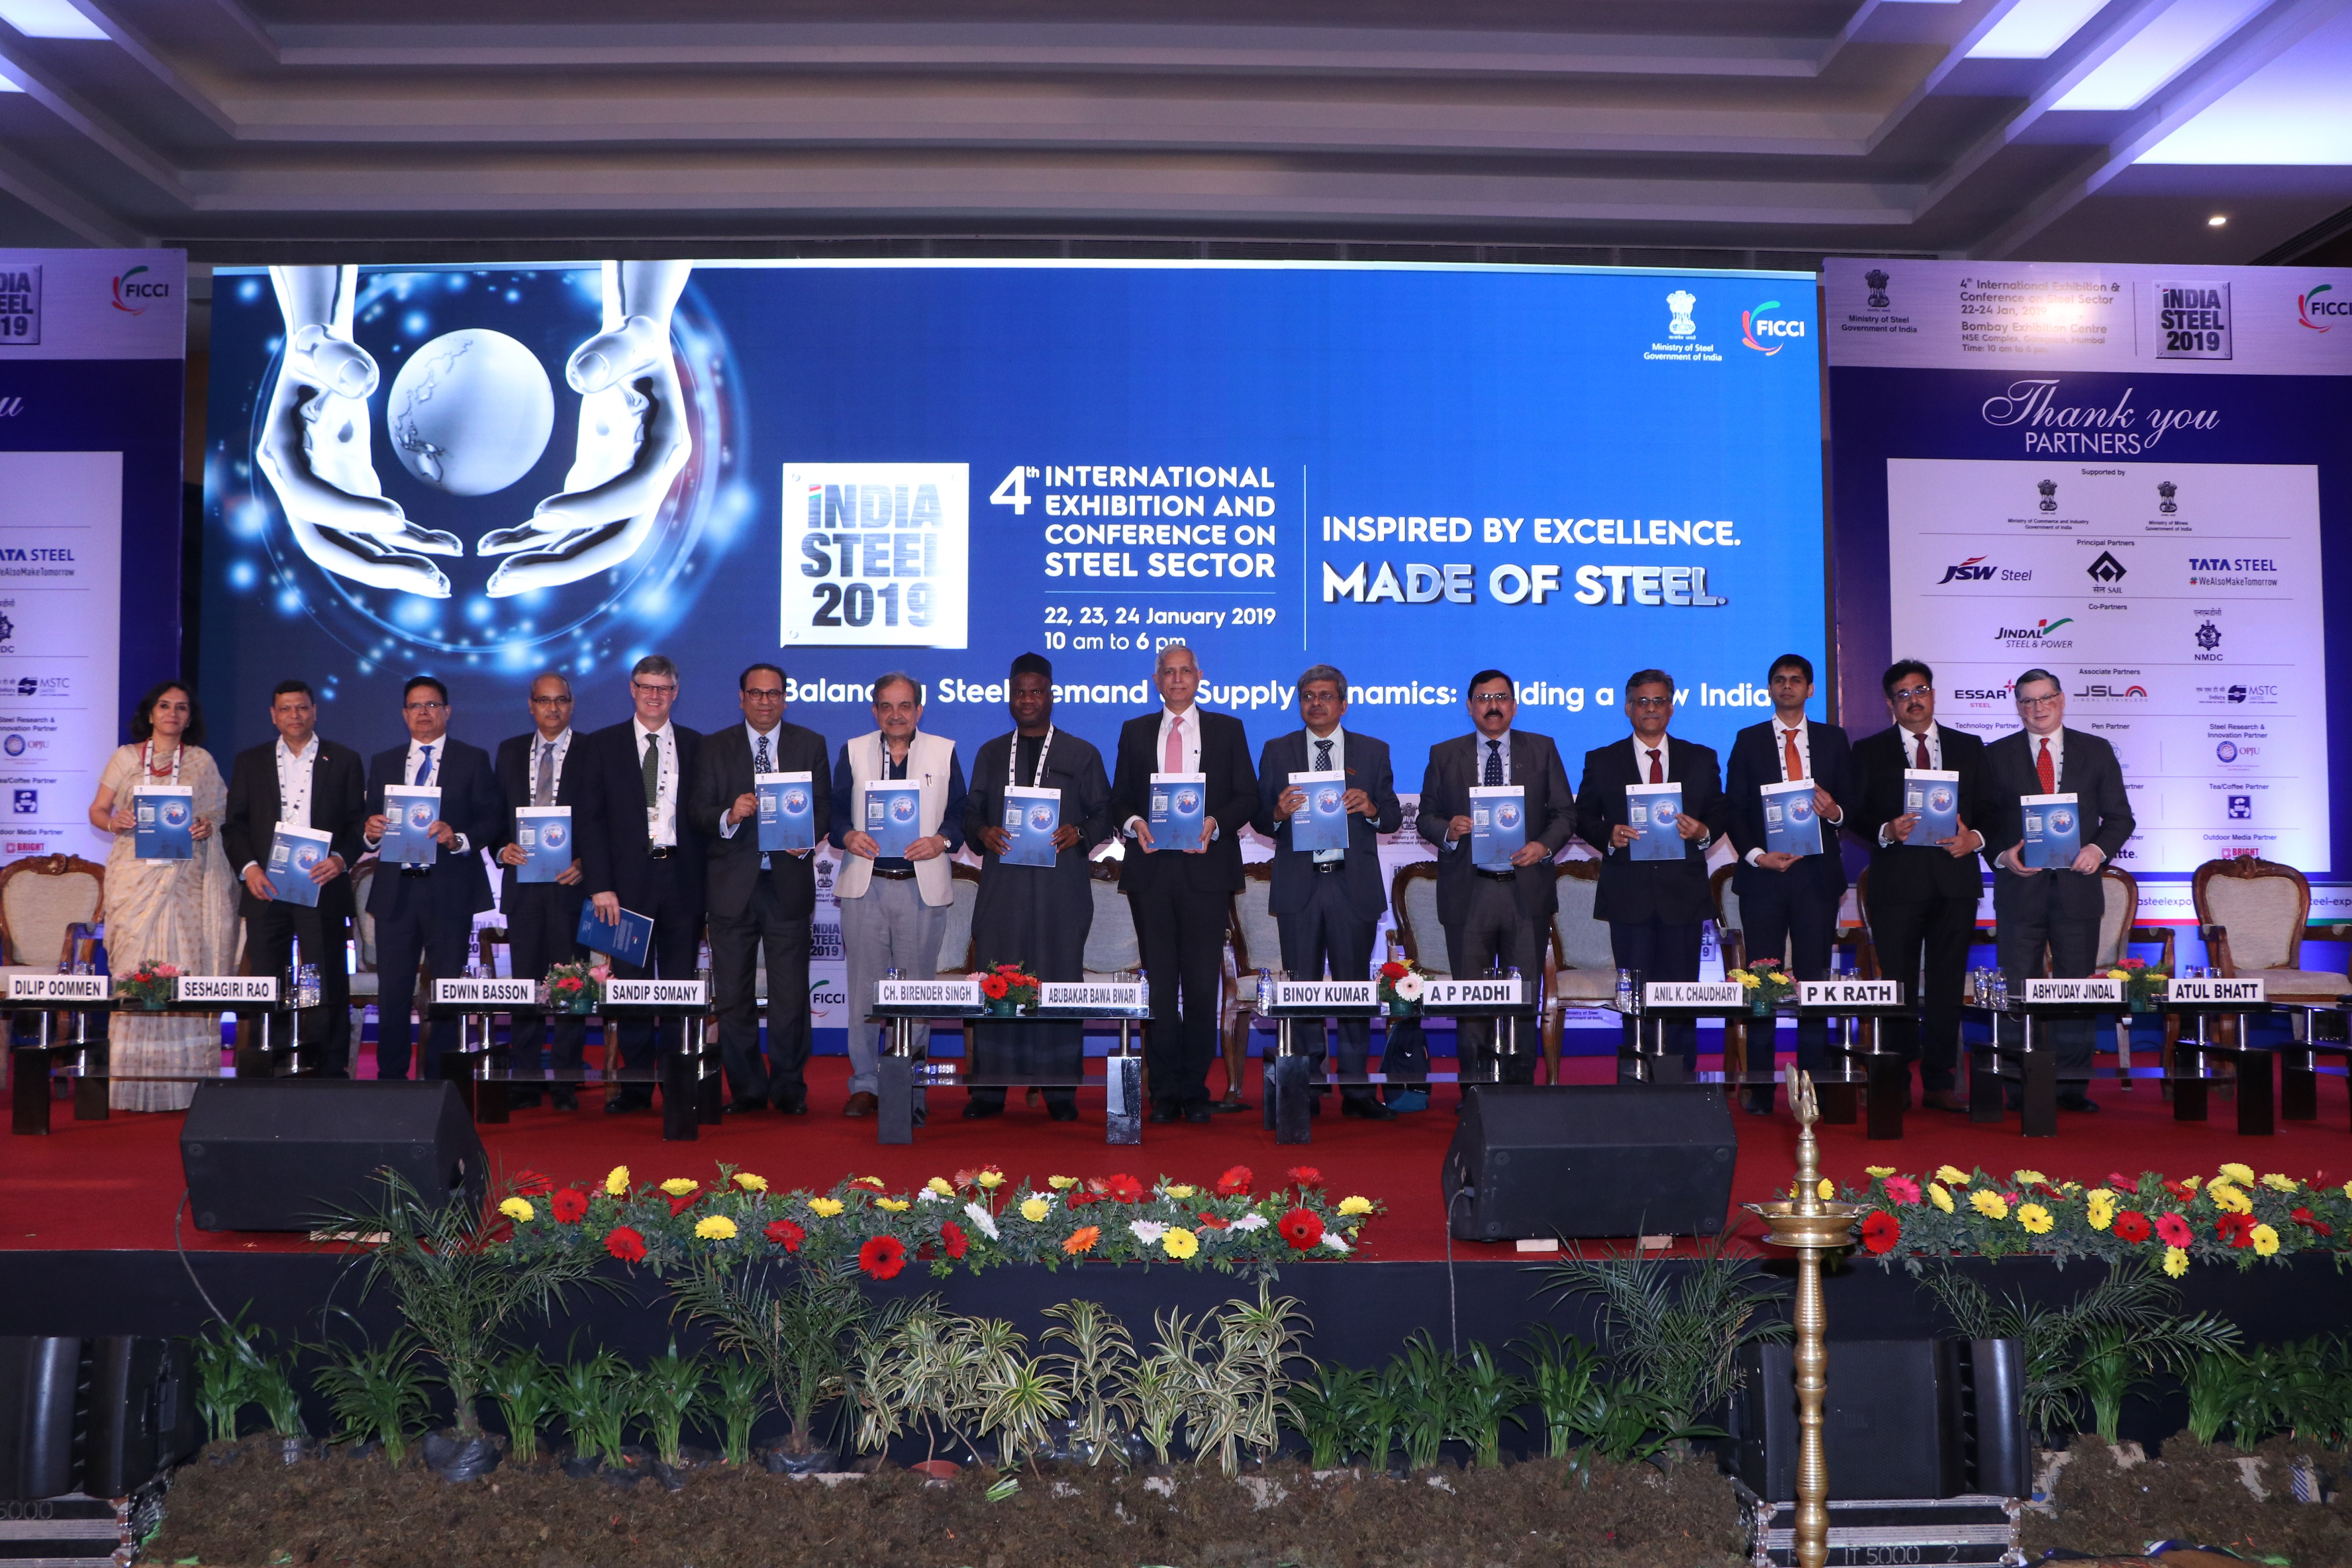 Release of a Souvenir at FICCI's India Steel 2019